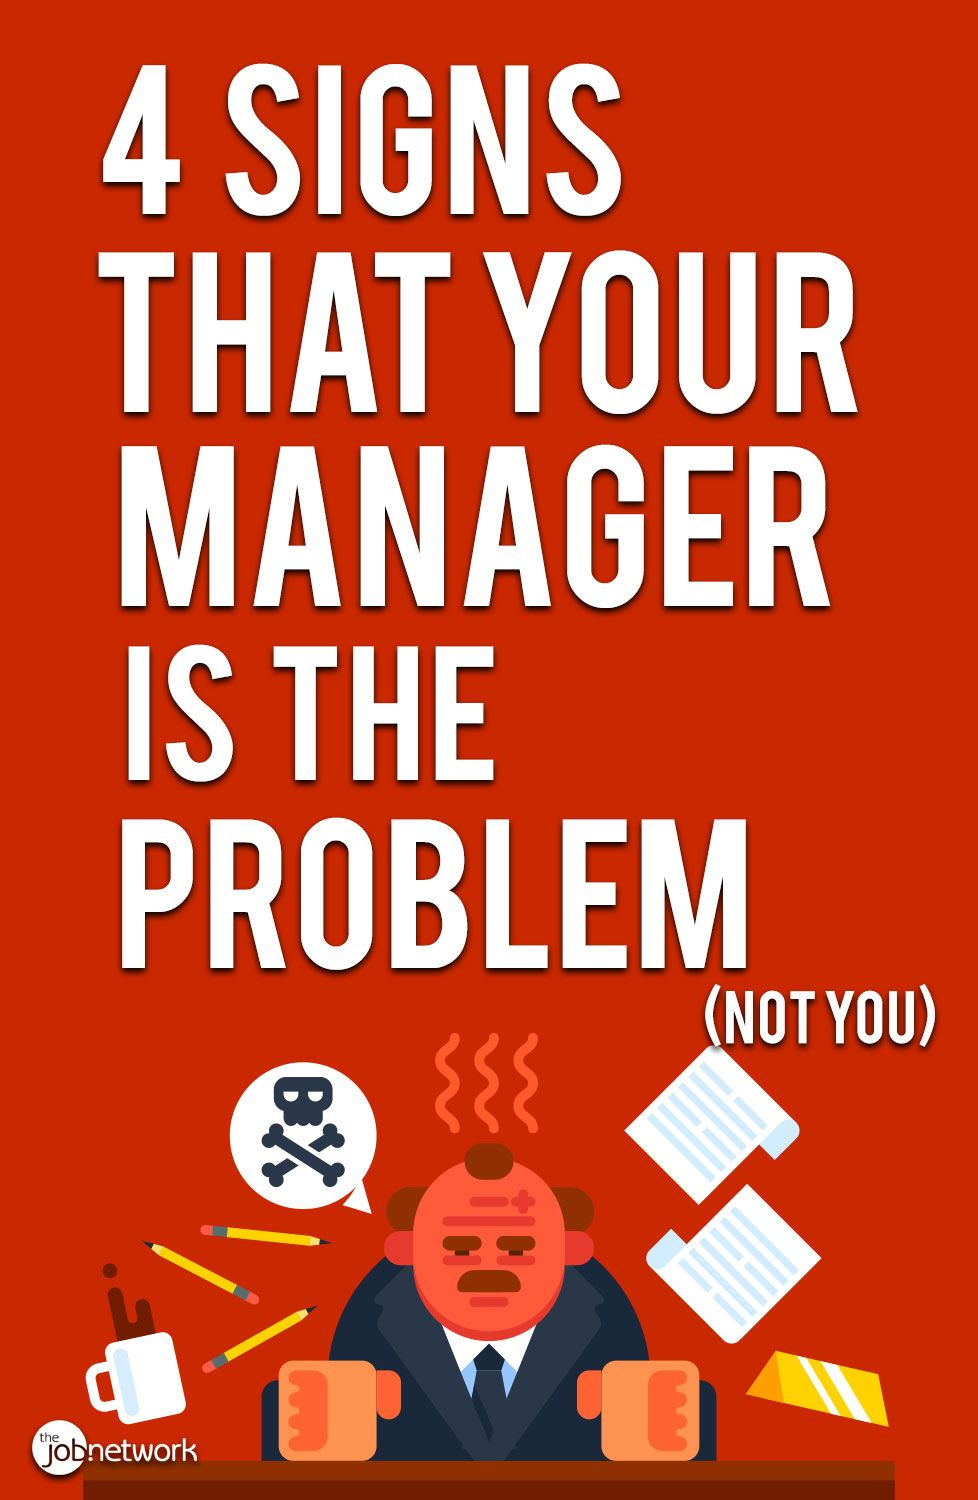 4 signs that your manager is the problem—not you